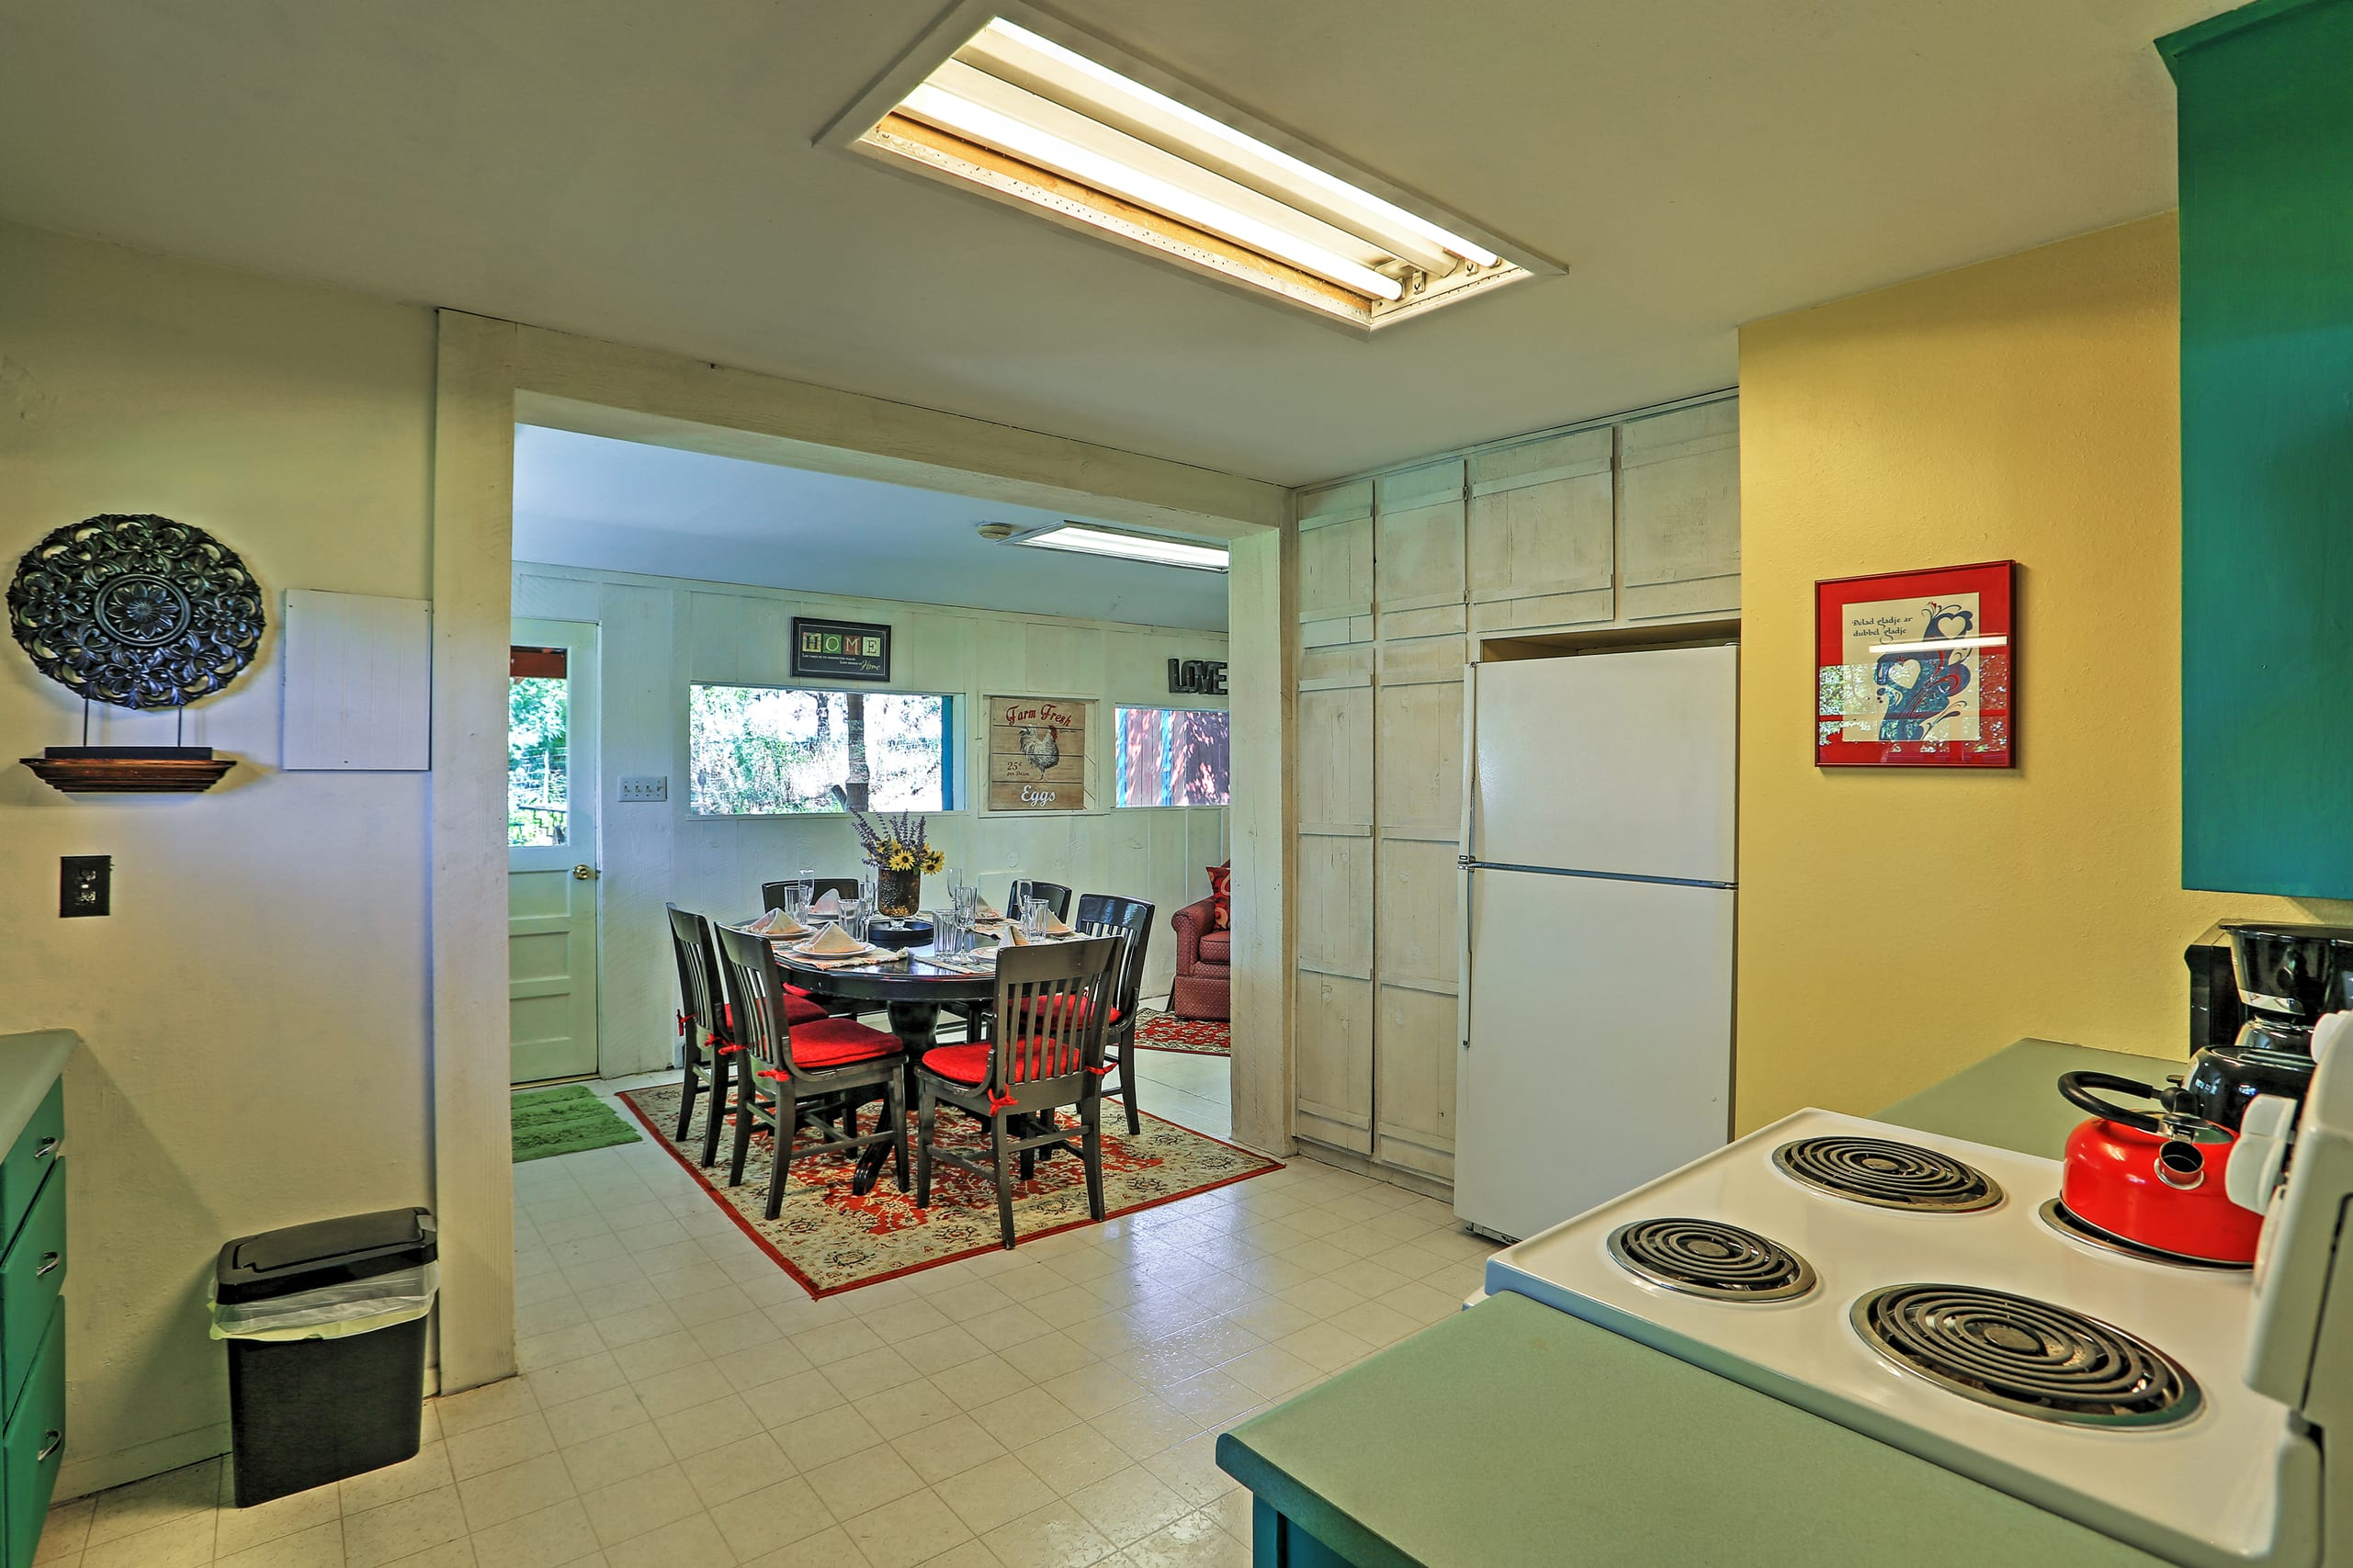 This full kitchen is equipped with all appliances necessary.